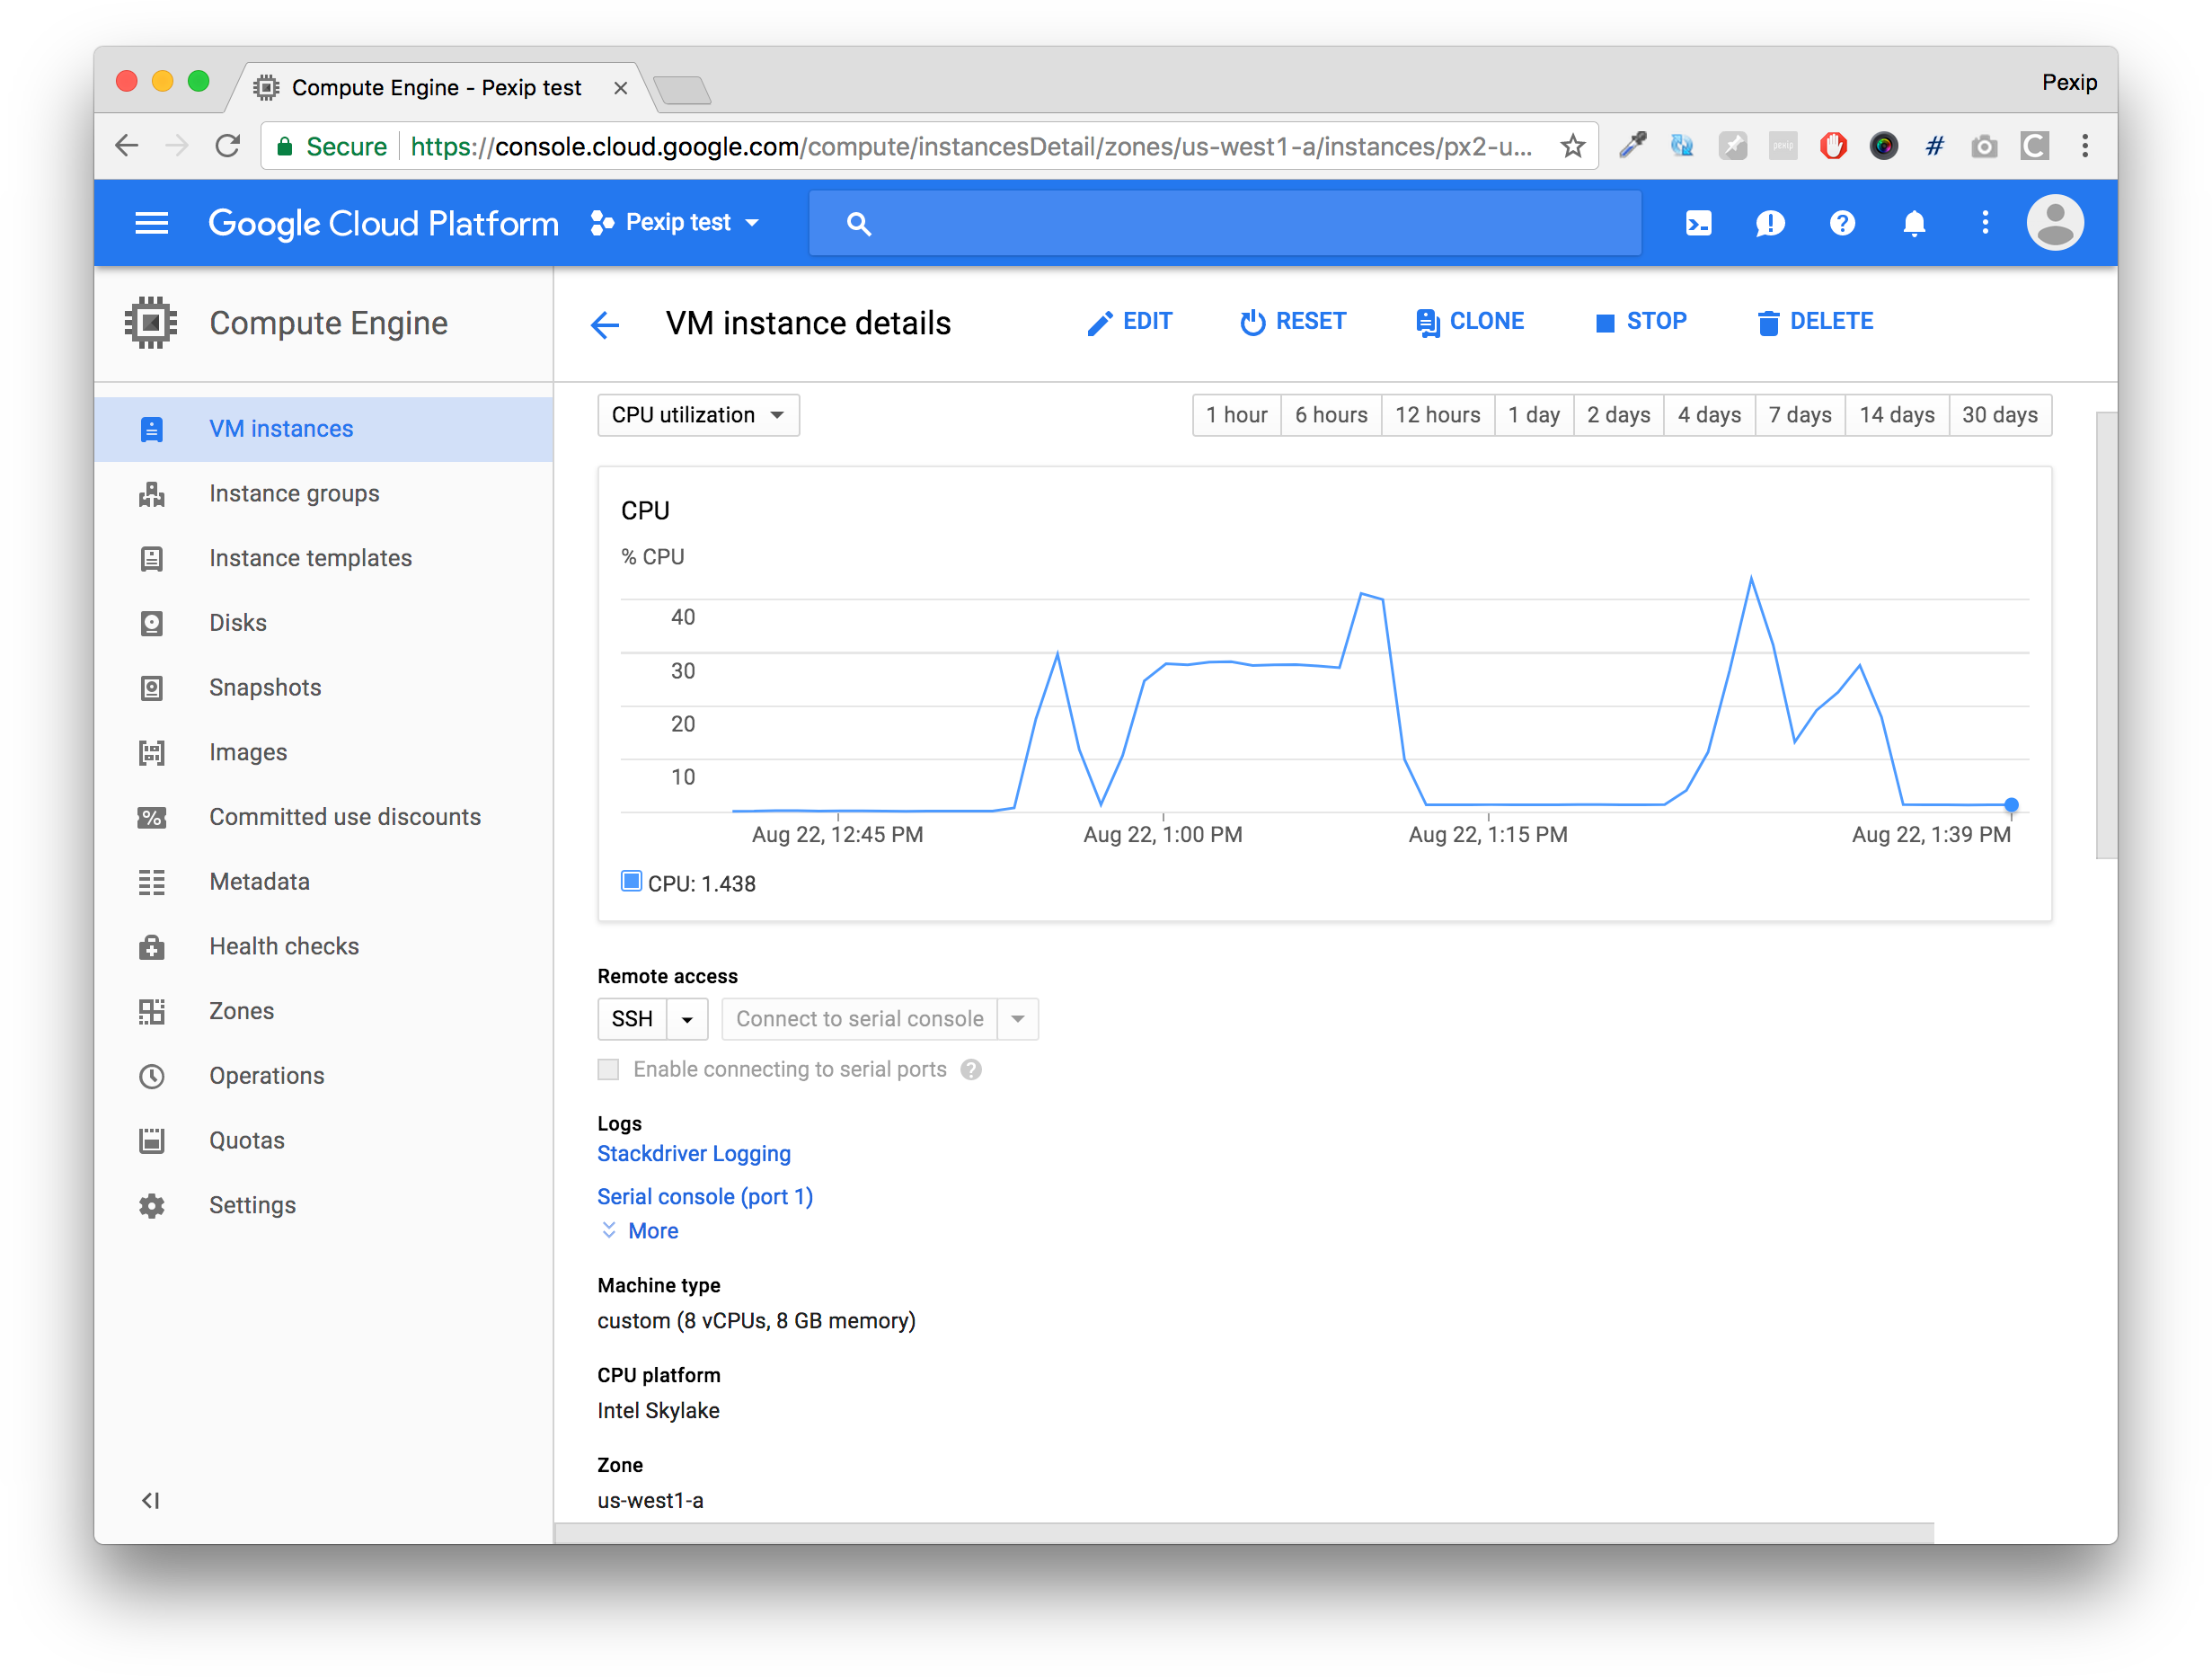 Pexip screenshot: Integrate Pexip Infinity into the Google Cloud Platform to fetch details such as analytics, instances, and more